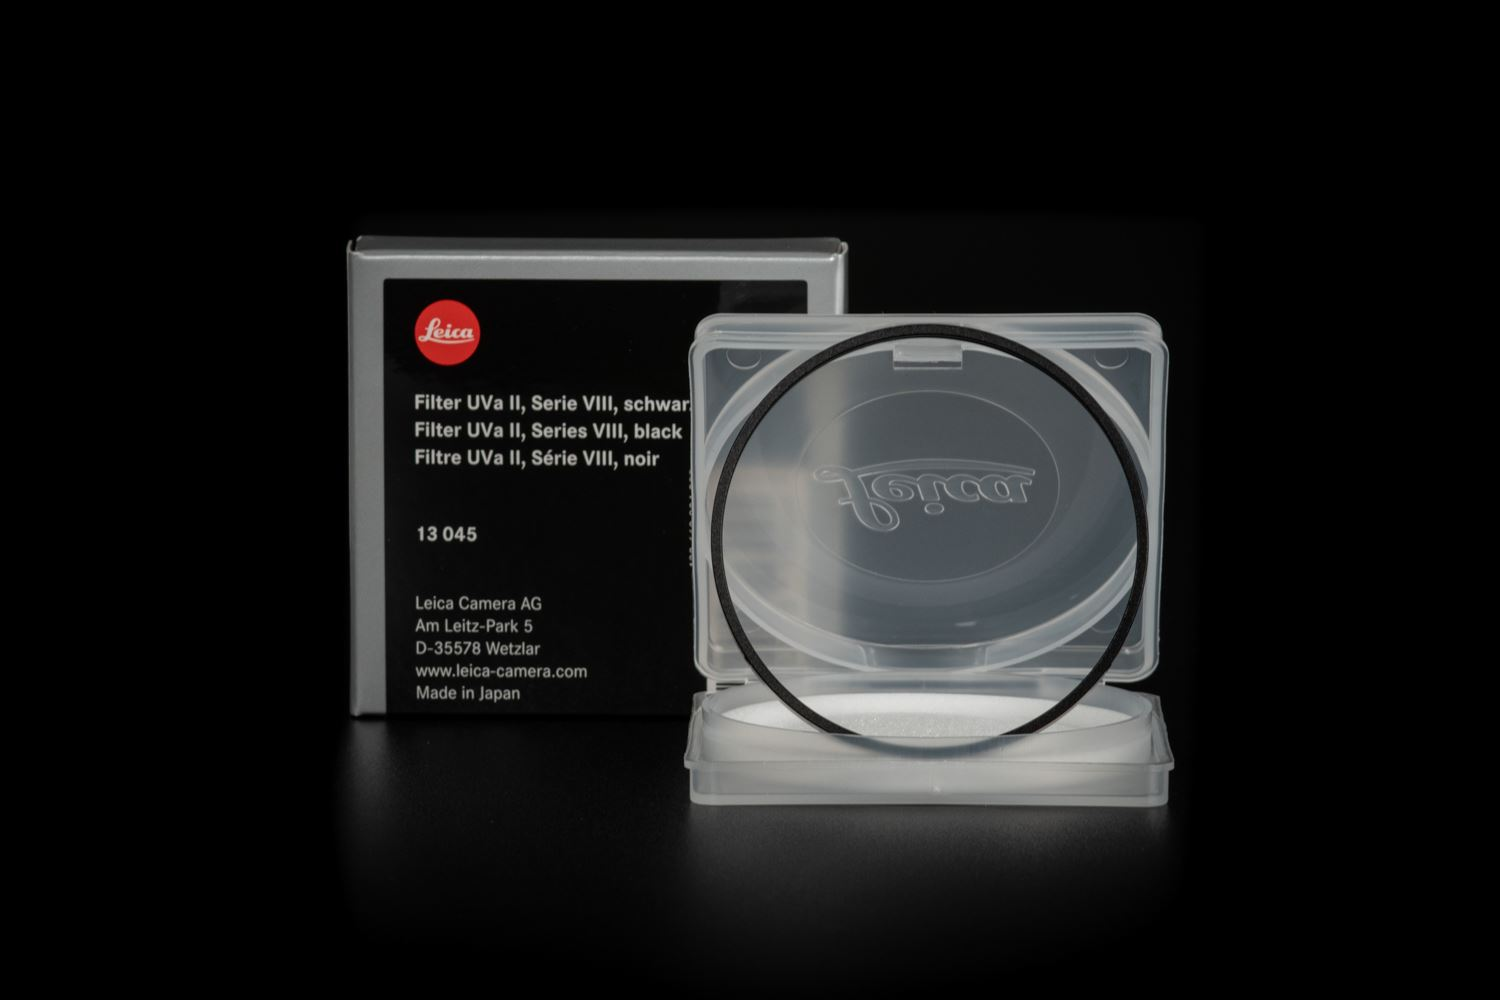 Picture of Leica Filter Uva II, Series VIII, black